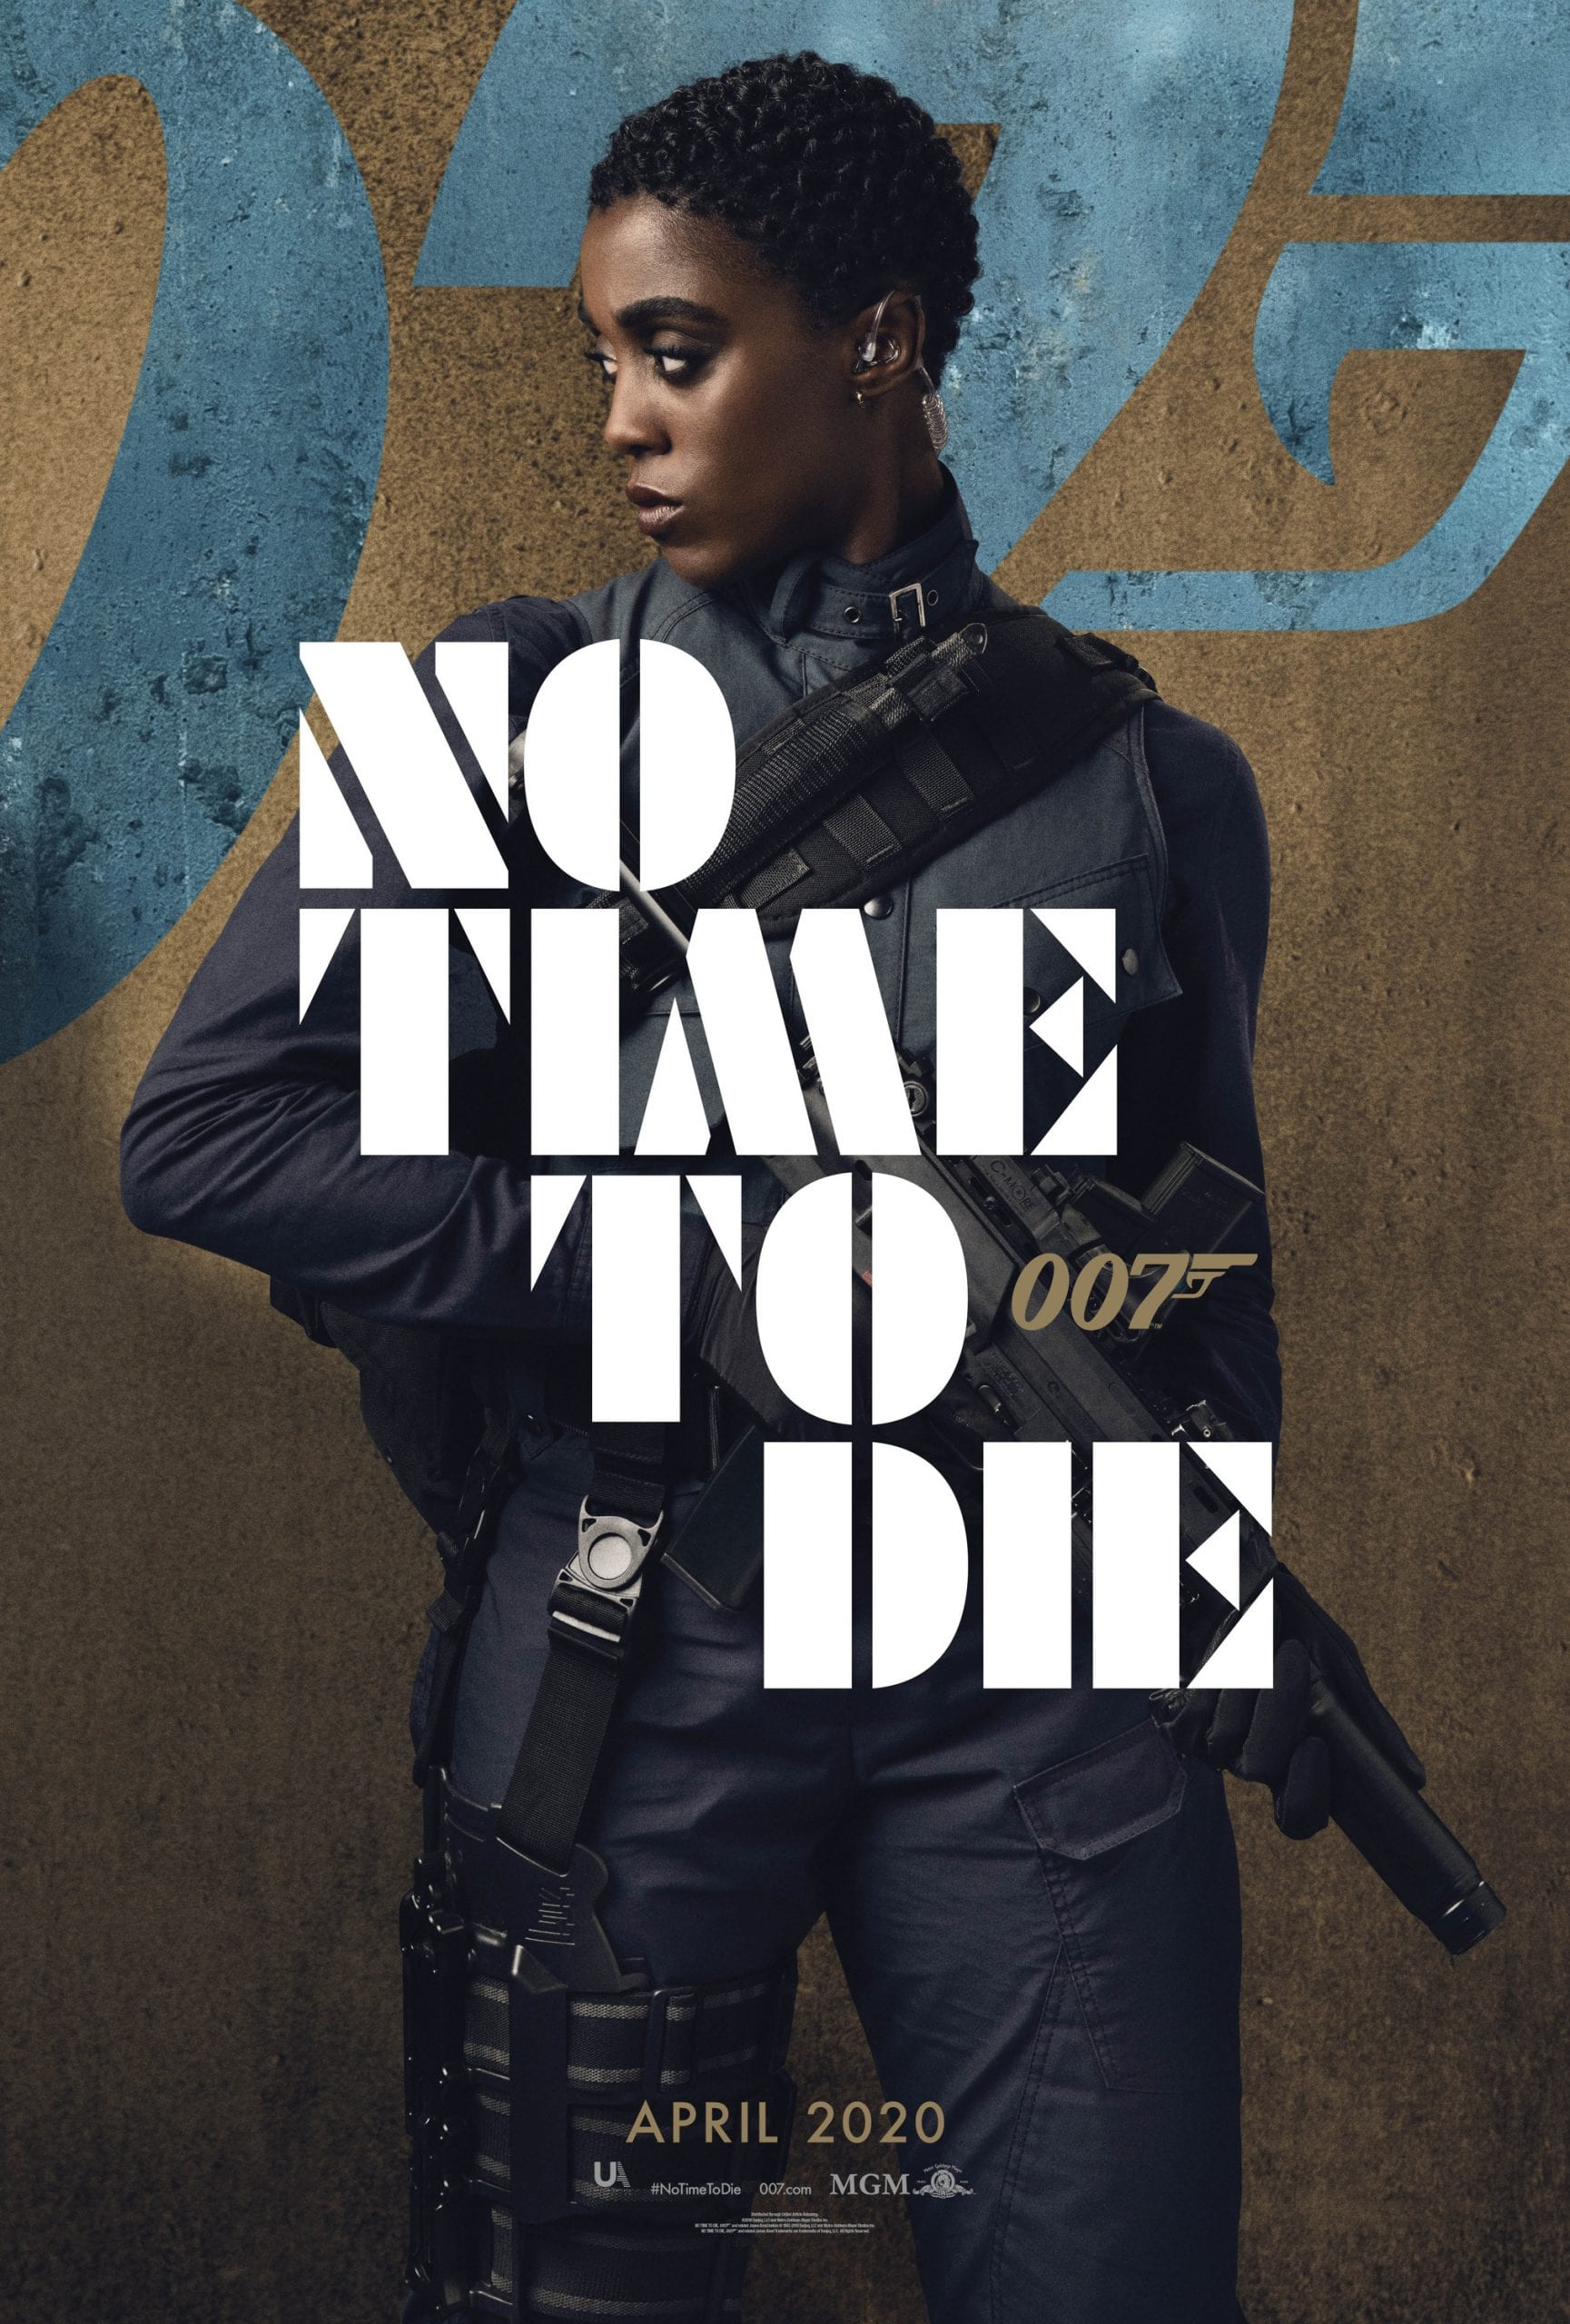 007 No Time To Die Bond 25 Character Posters Lashana Lynch as Nomi